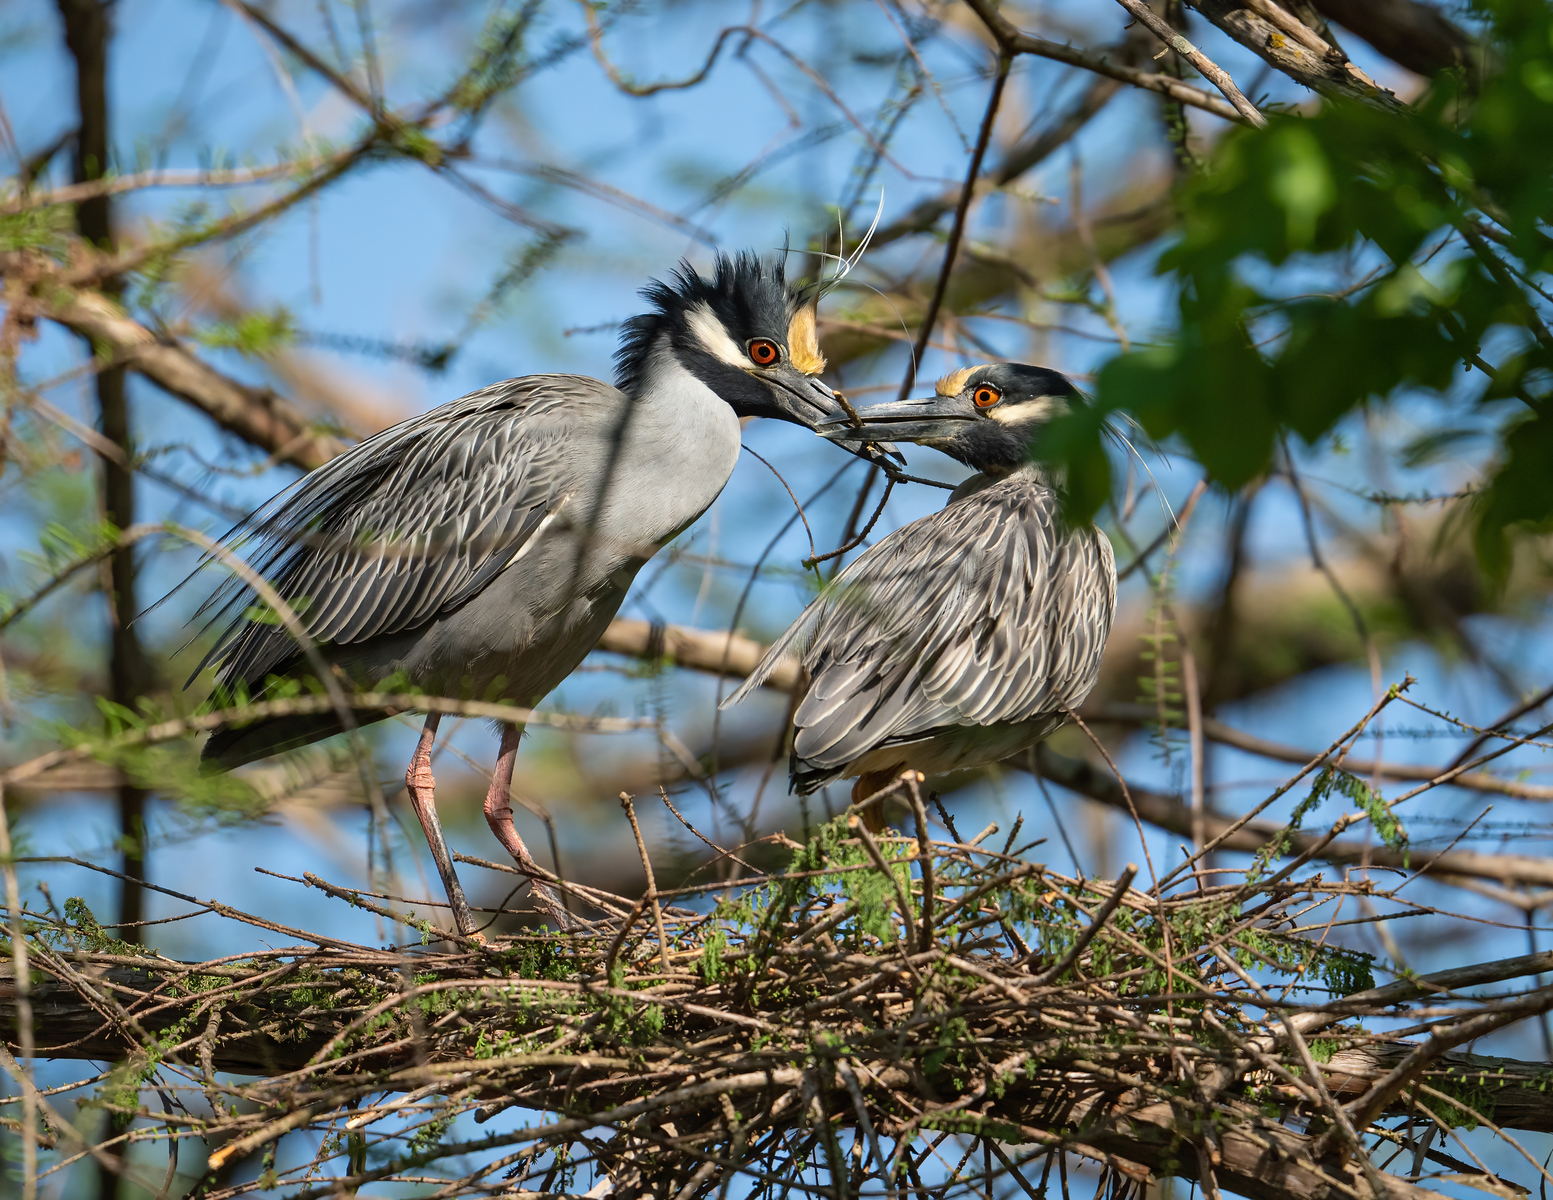 IMAGE: https://photos.smugmug.com/Beautyinthetreesandintheair/Local-Brazos-County-Rookery/i-Zhm4tT5/0/f76d52f4/X3/Y-C%20night%20heron_9_4-1-21-239-X3.jpg